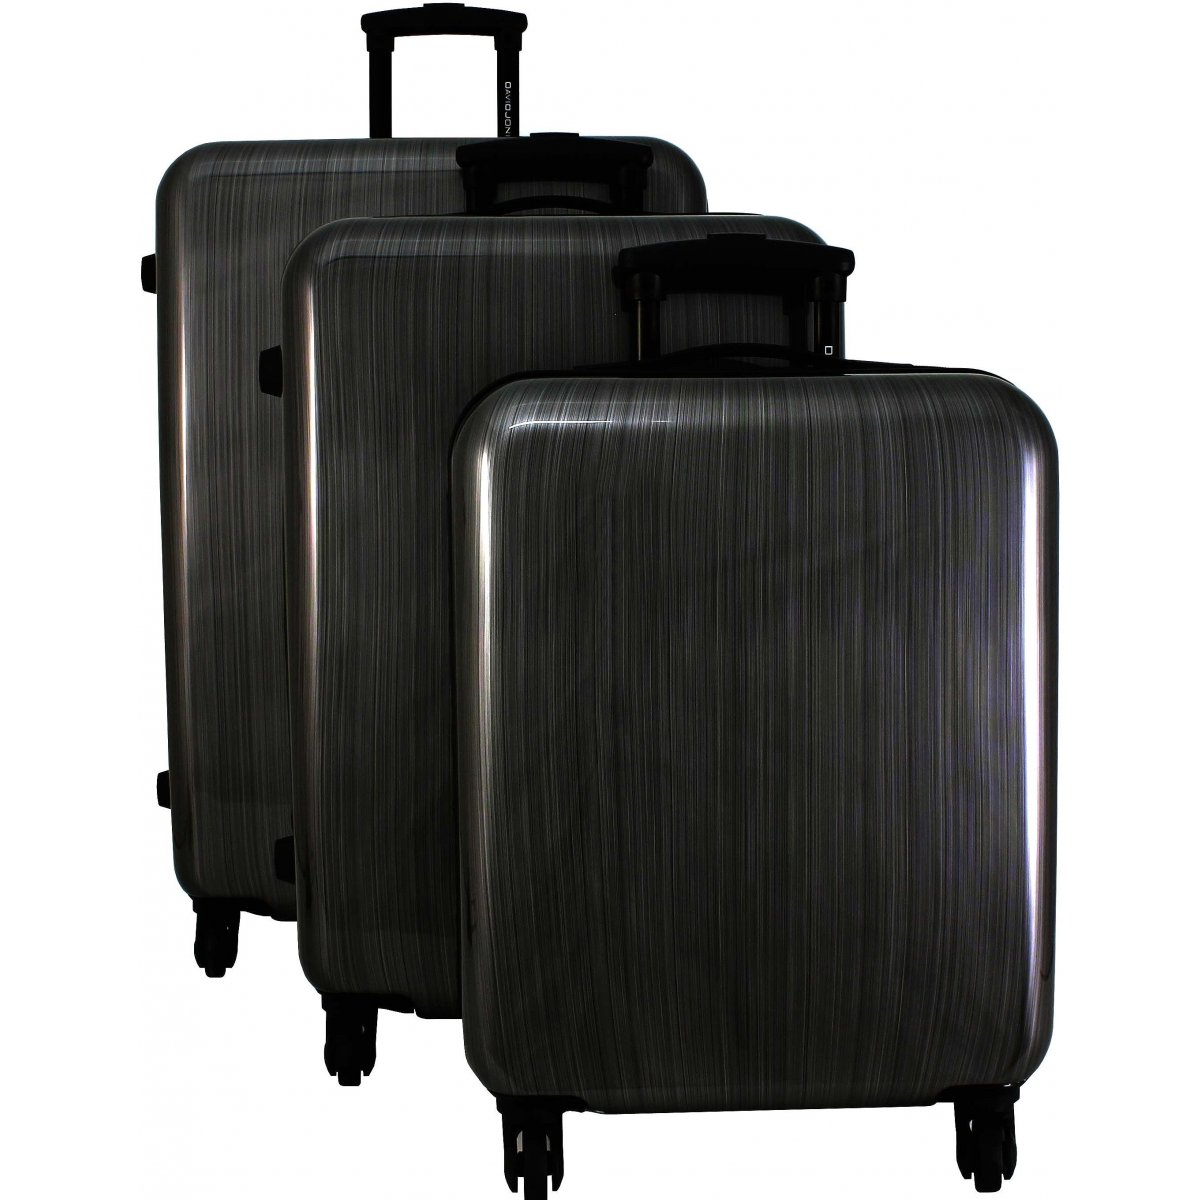 lot 3 valises dont 1 cabine ryanair david jones ba20593. Black Bedroom Furniture Sets. Home Design Ideas